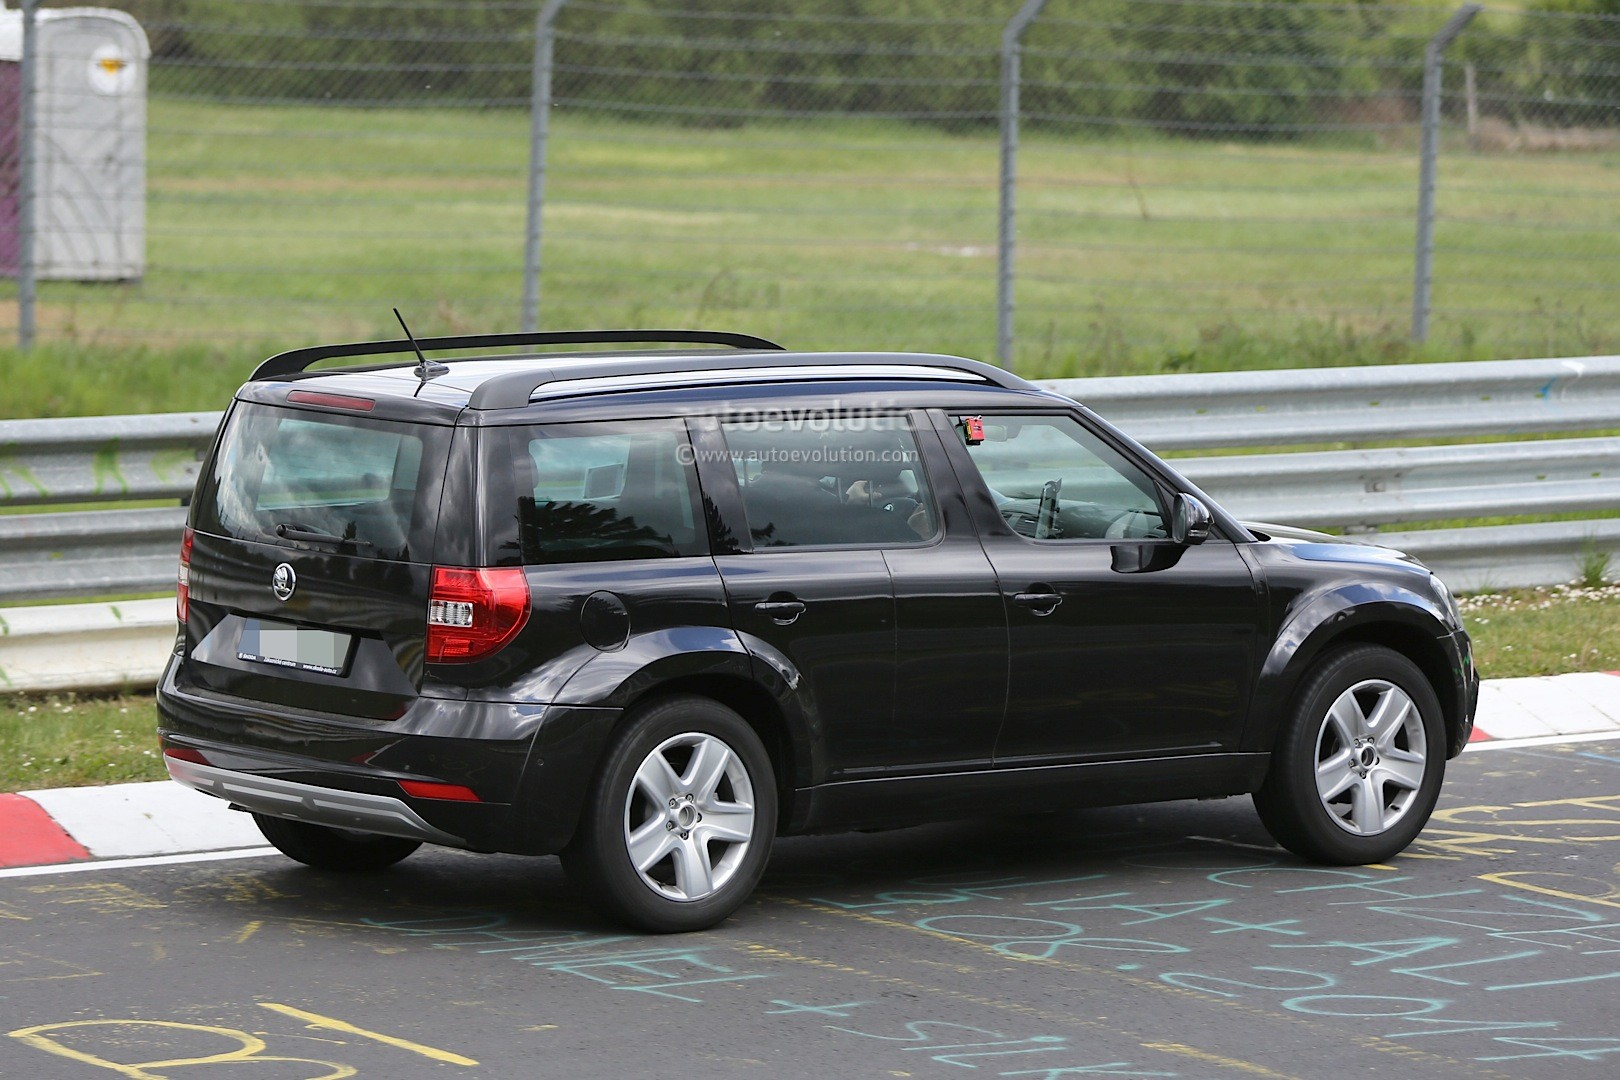 spyshots 2016 skoda snowman 7 seat crossover testing at nurburgring as yeti mule autoevolution. Black Bedroom Furniture Sets. Home Design Ideas